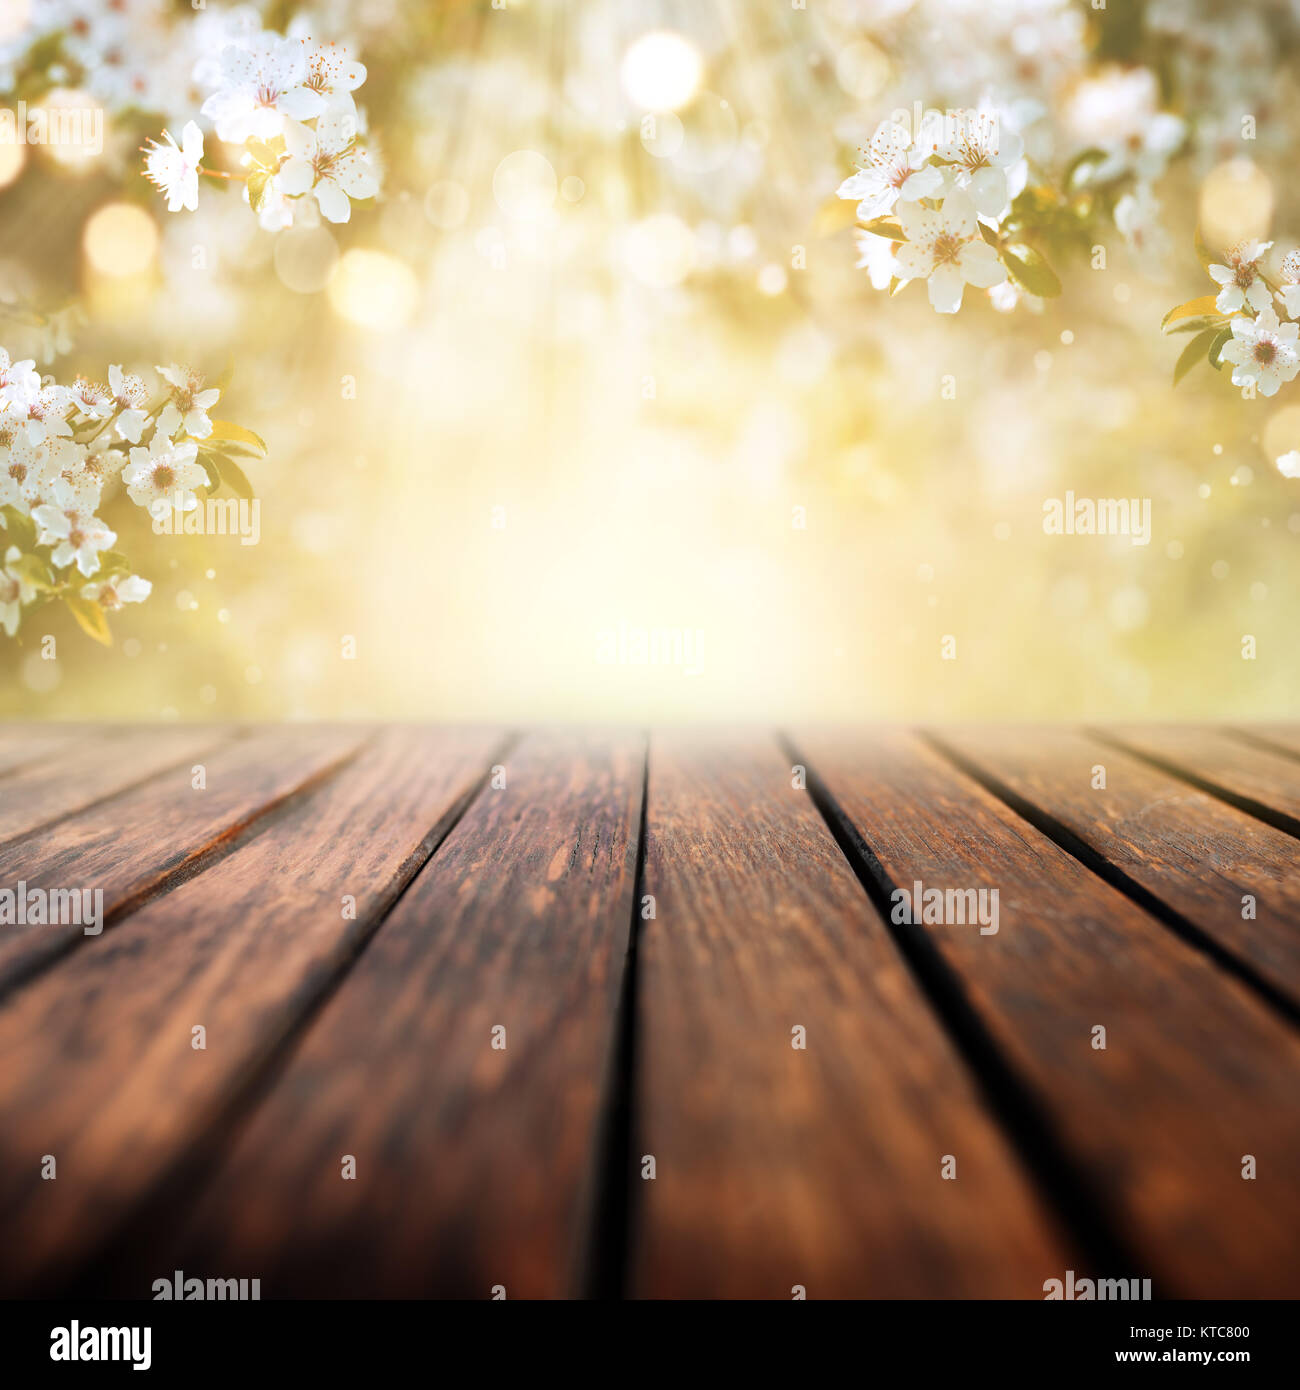 White blossoms in spring with sun rays and empty wooden table for a concept Stock Photo